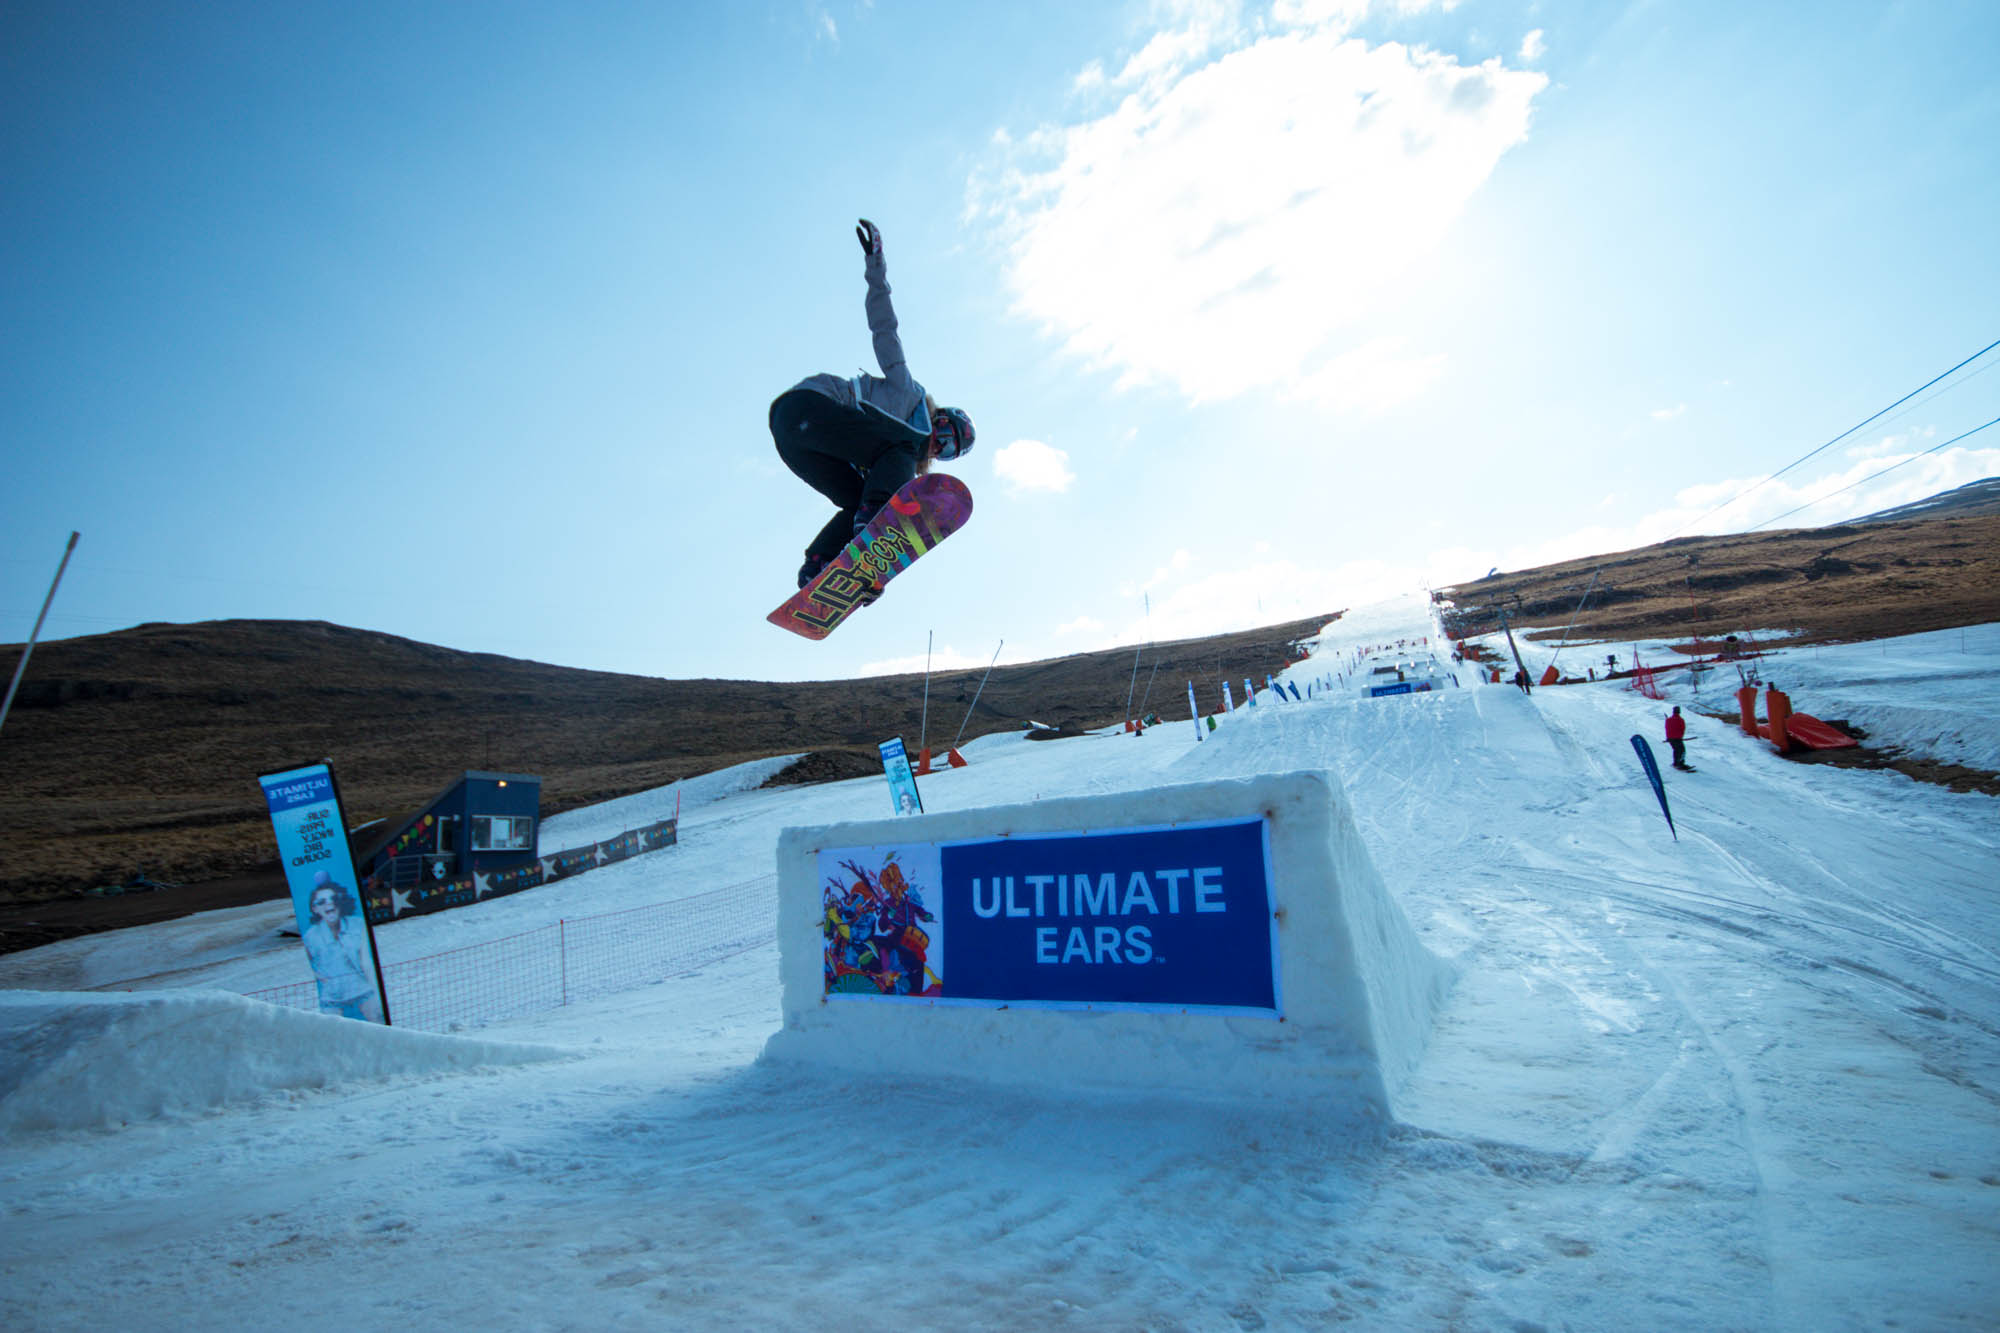 Mawa Jekot winning the Ladies Snowboarding division at Ultimate Ears Winter Whip